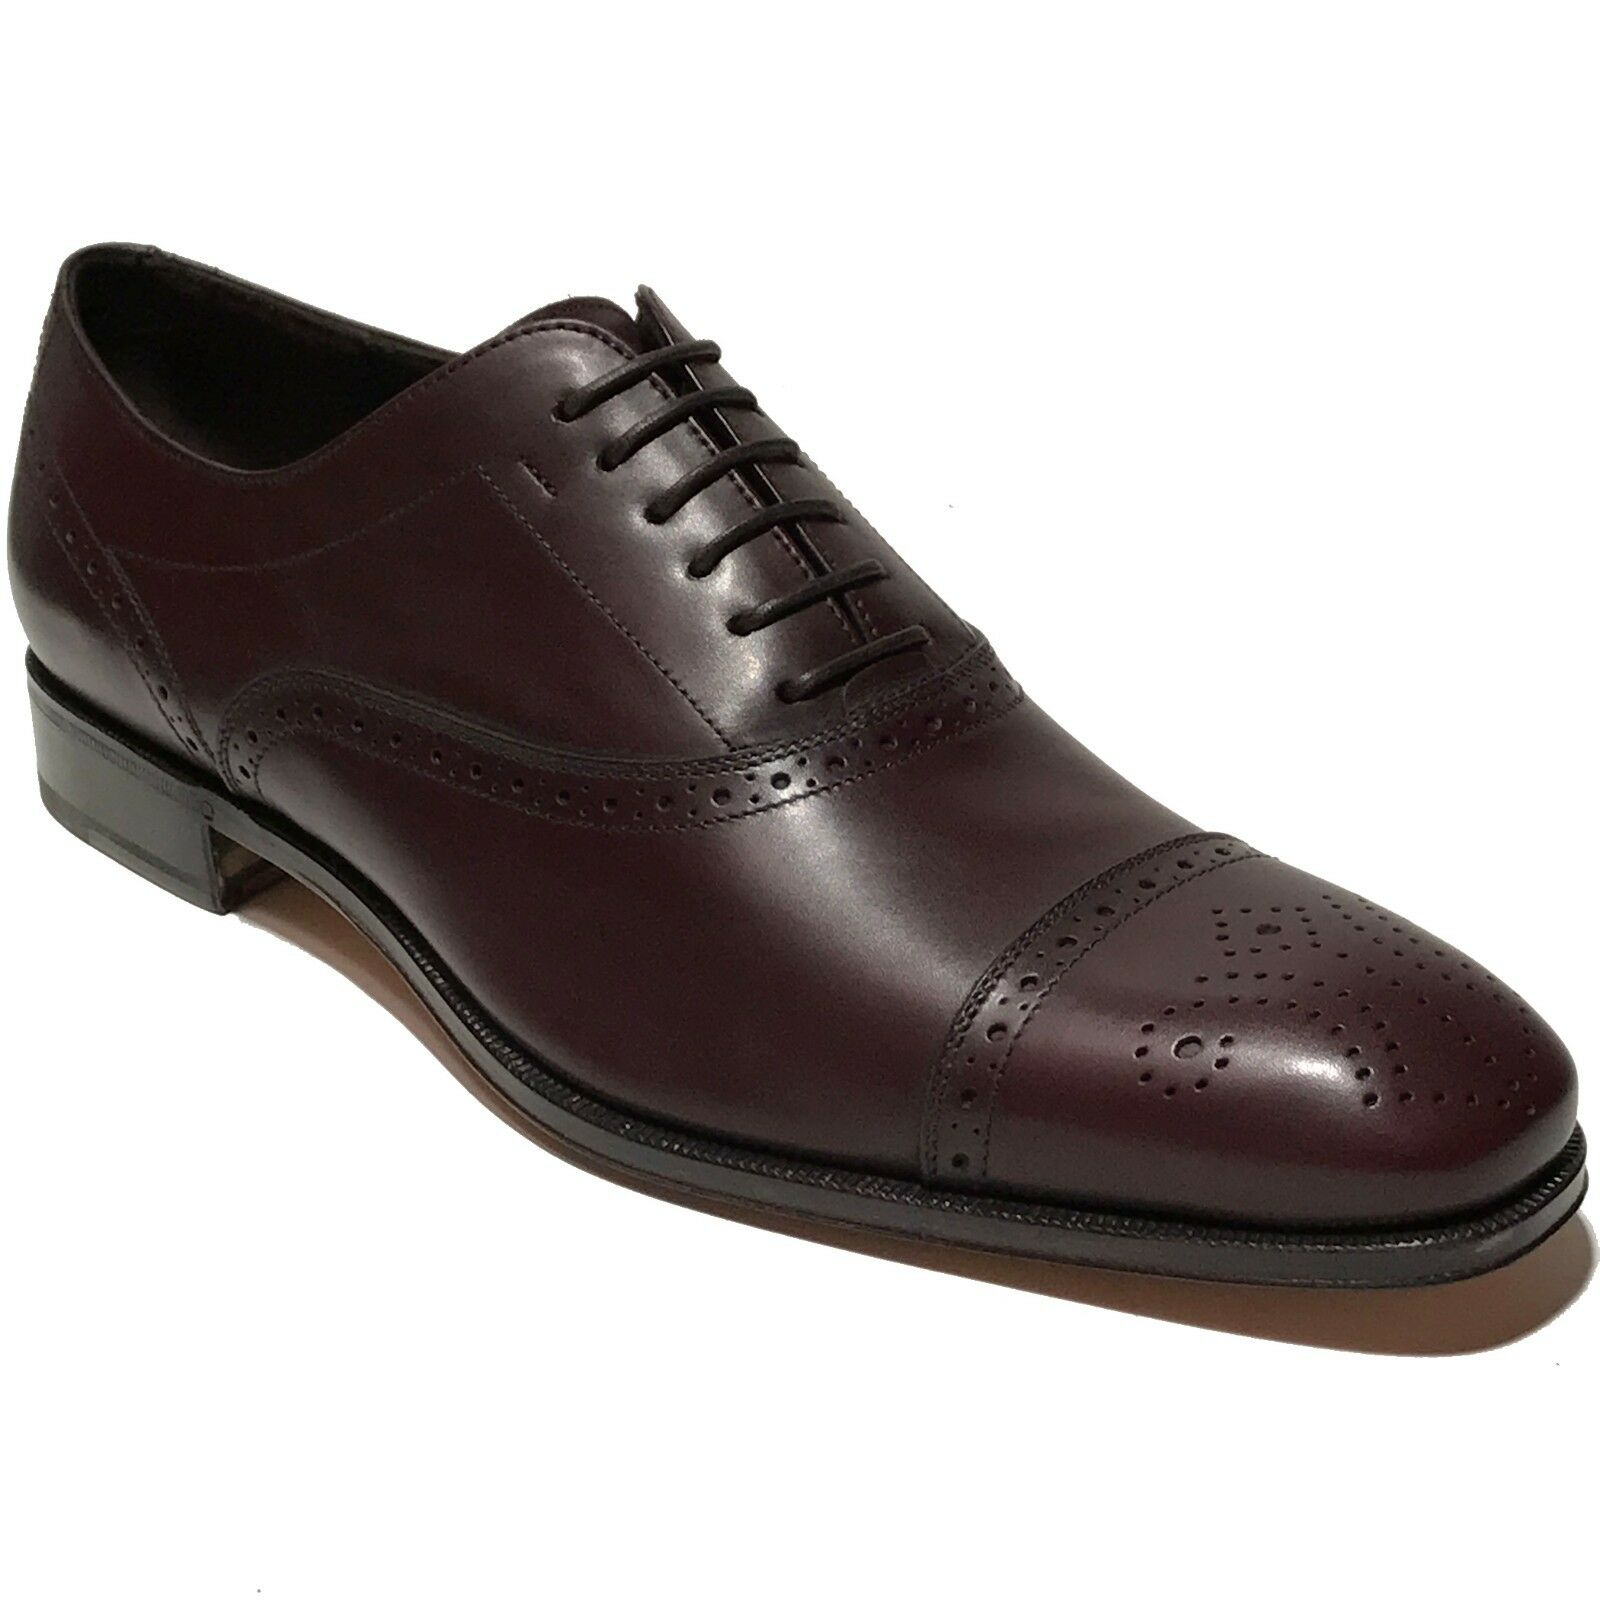 Ferragamo CAESY Brown Captoe Pelle Pelle Pelle Oxford 9.5 D 42.5 Dress Shoes Brogue Brandy 2c7f88